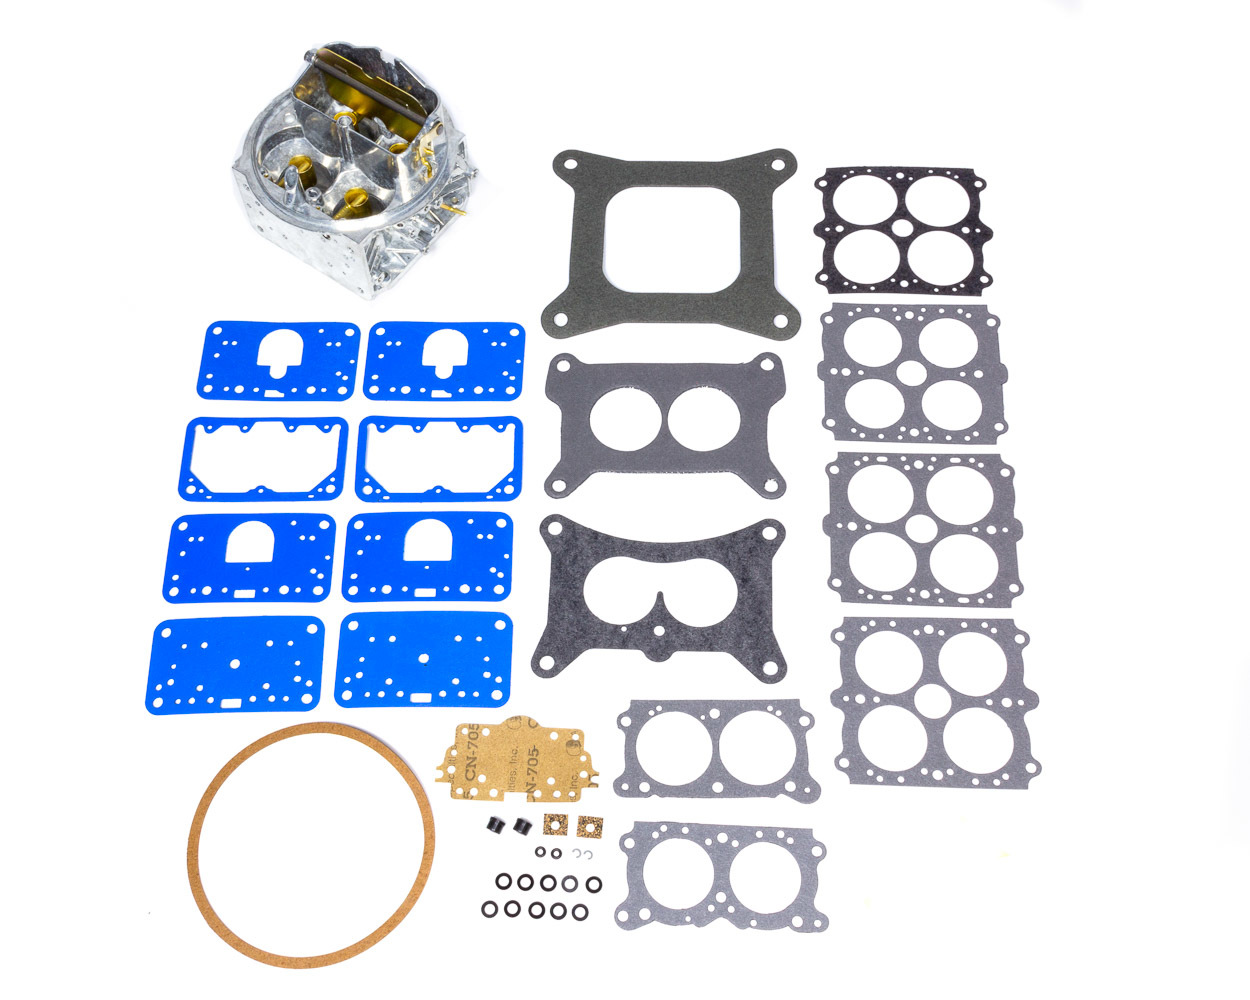 Replacement Main Body Kit for 0-80670